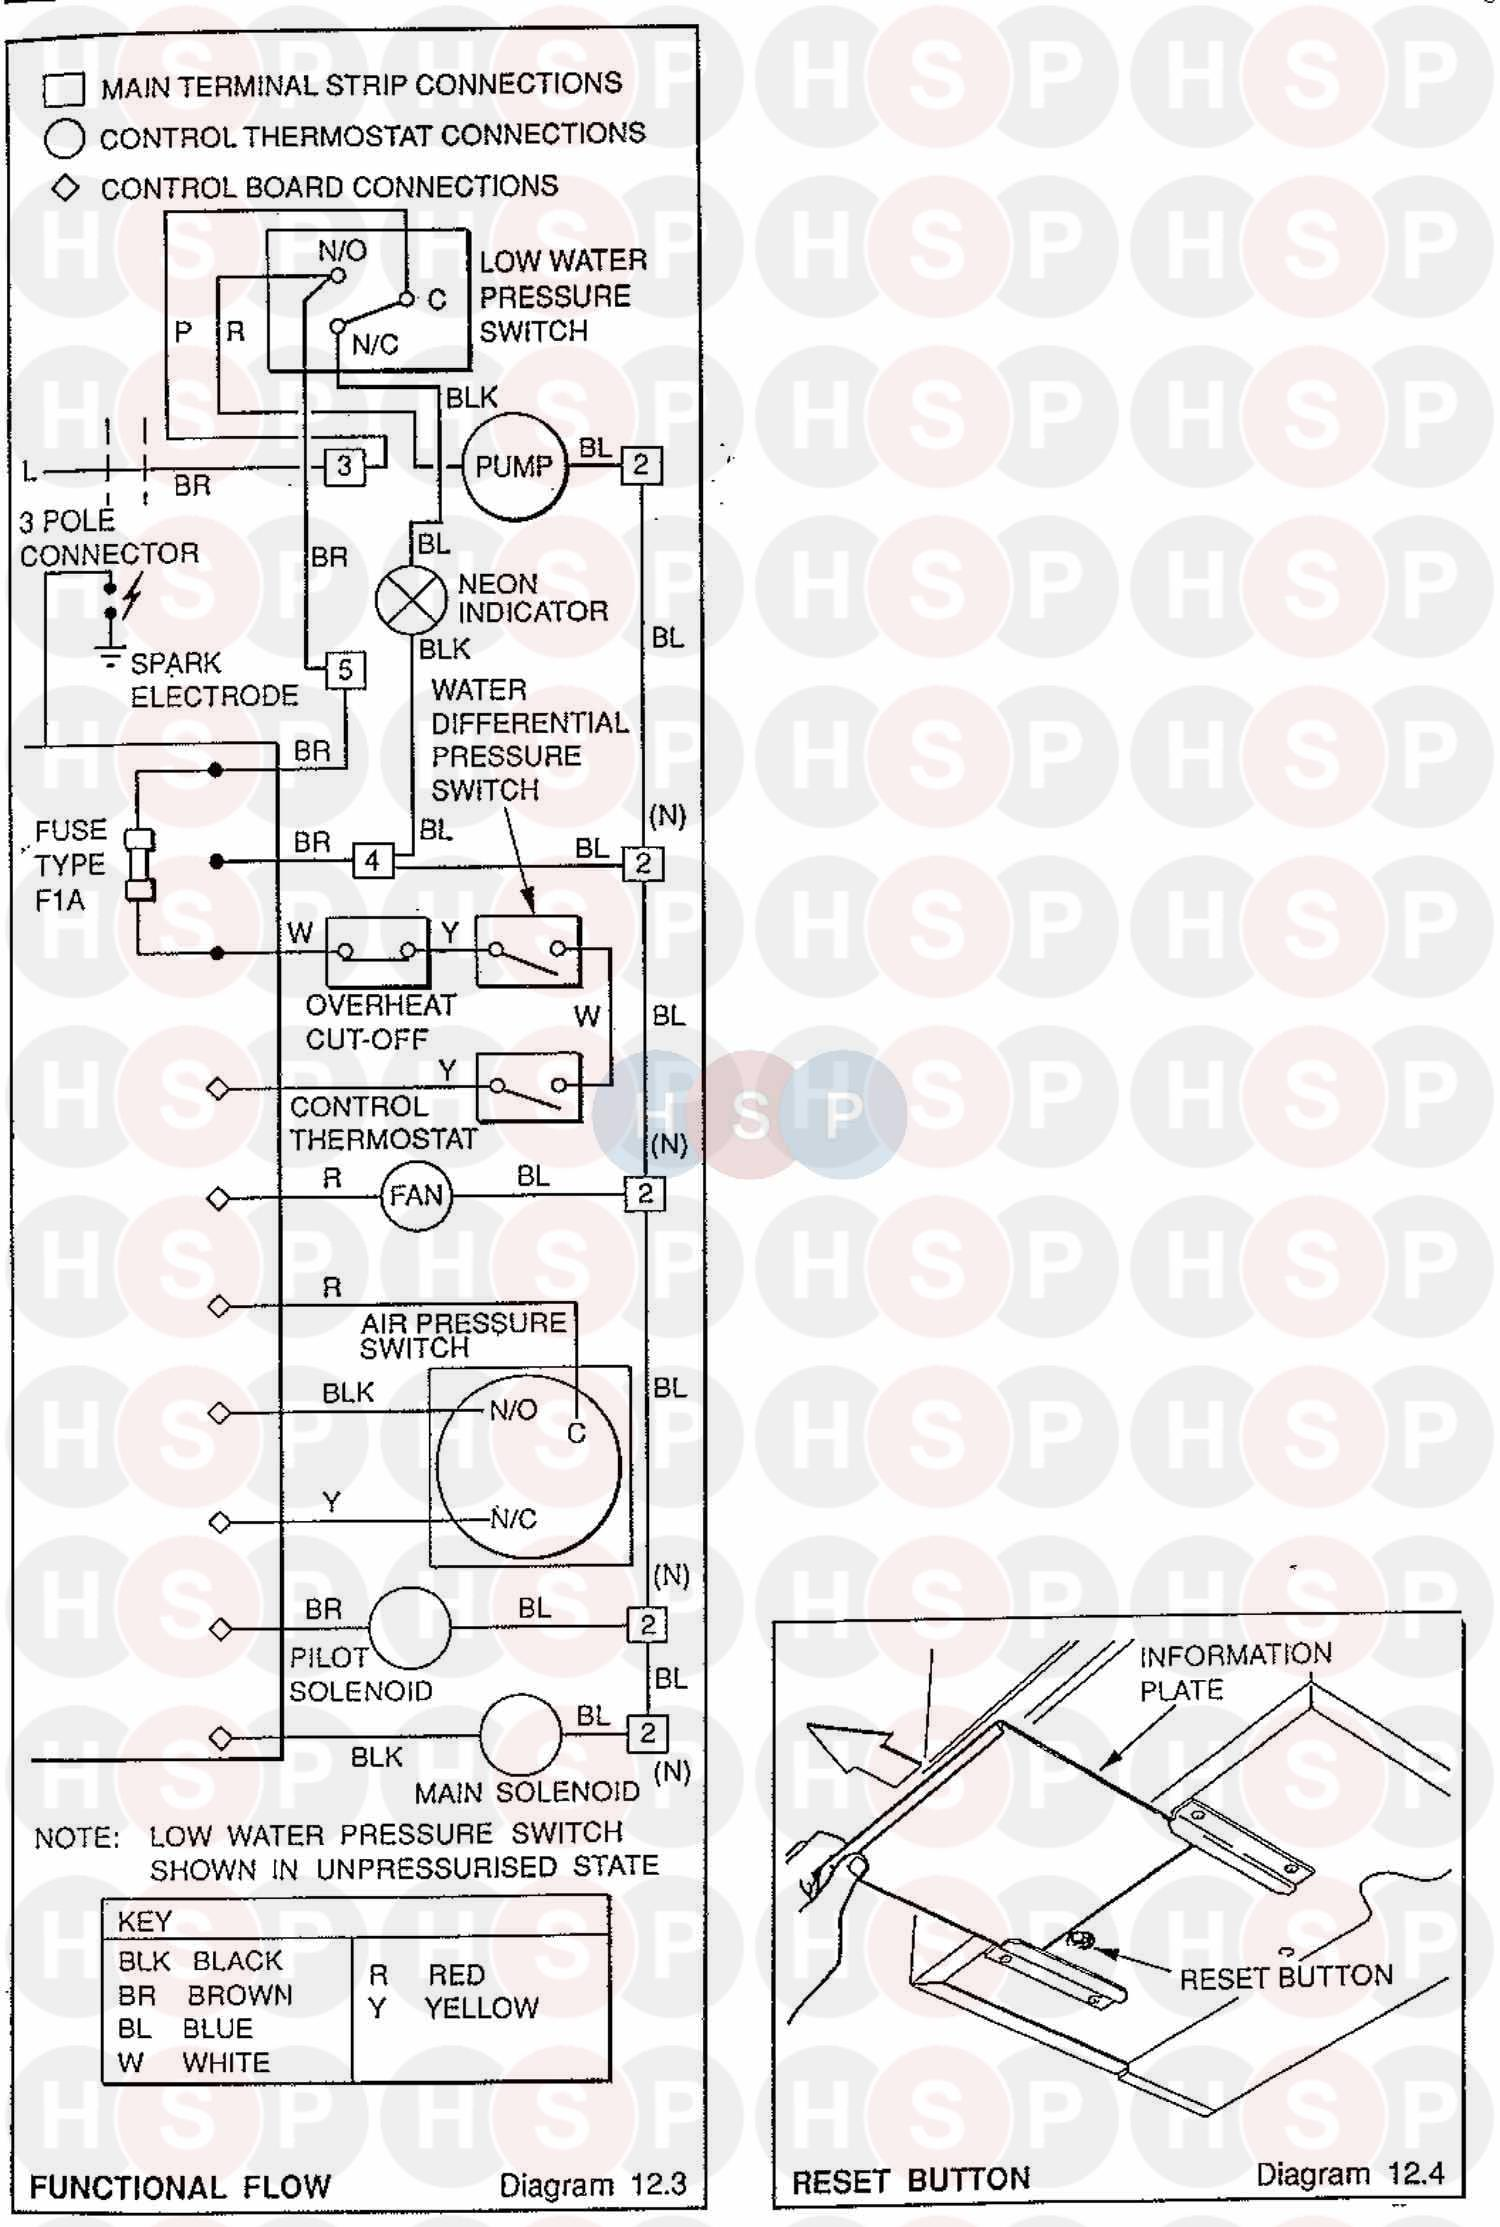 Saunier Duval System 40040 Functional Flow Wiring Diagram Elkay Click The To Open It On A New Page